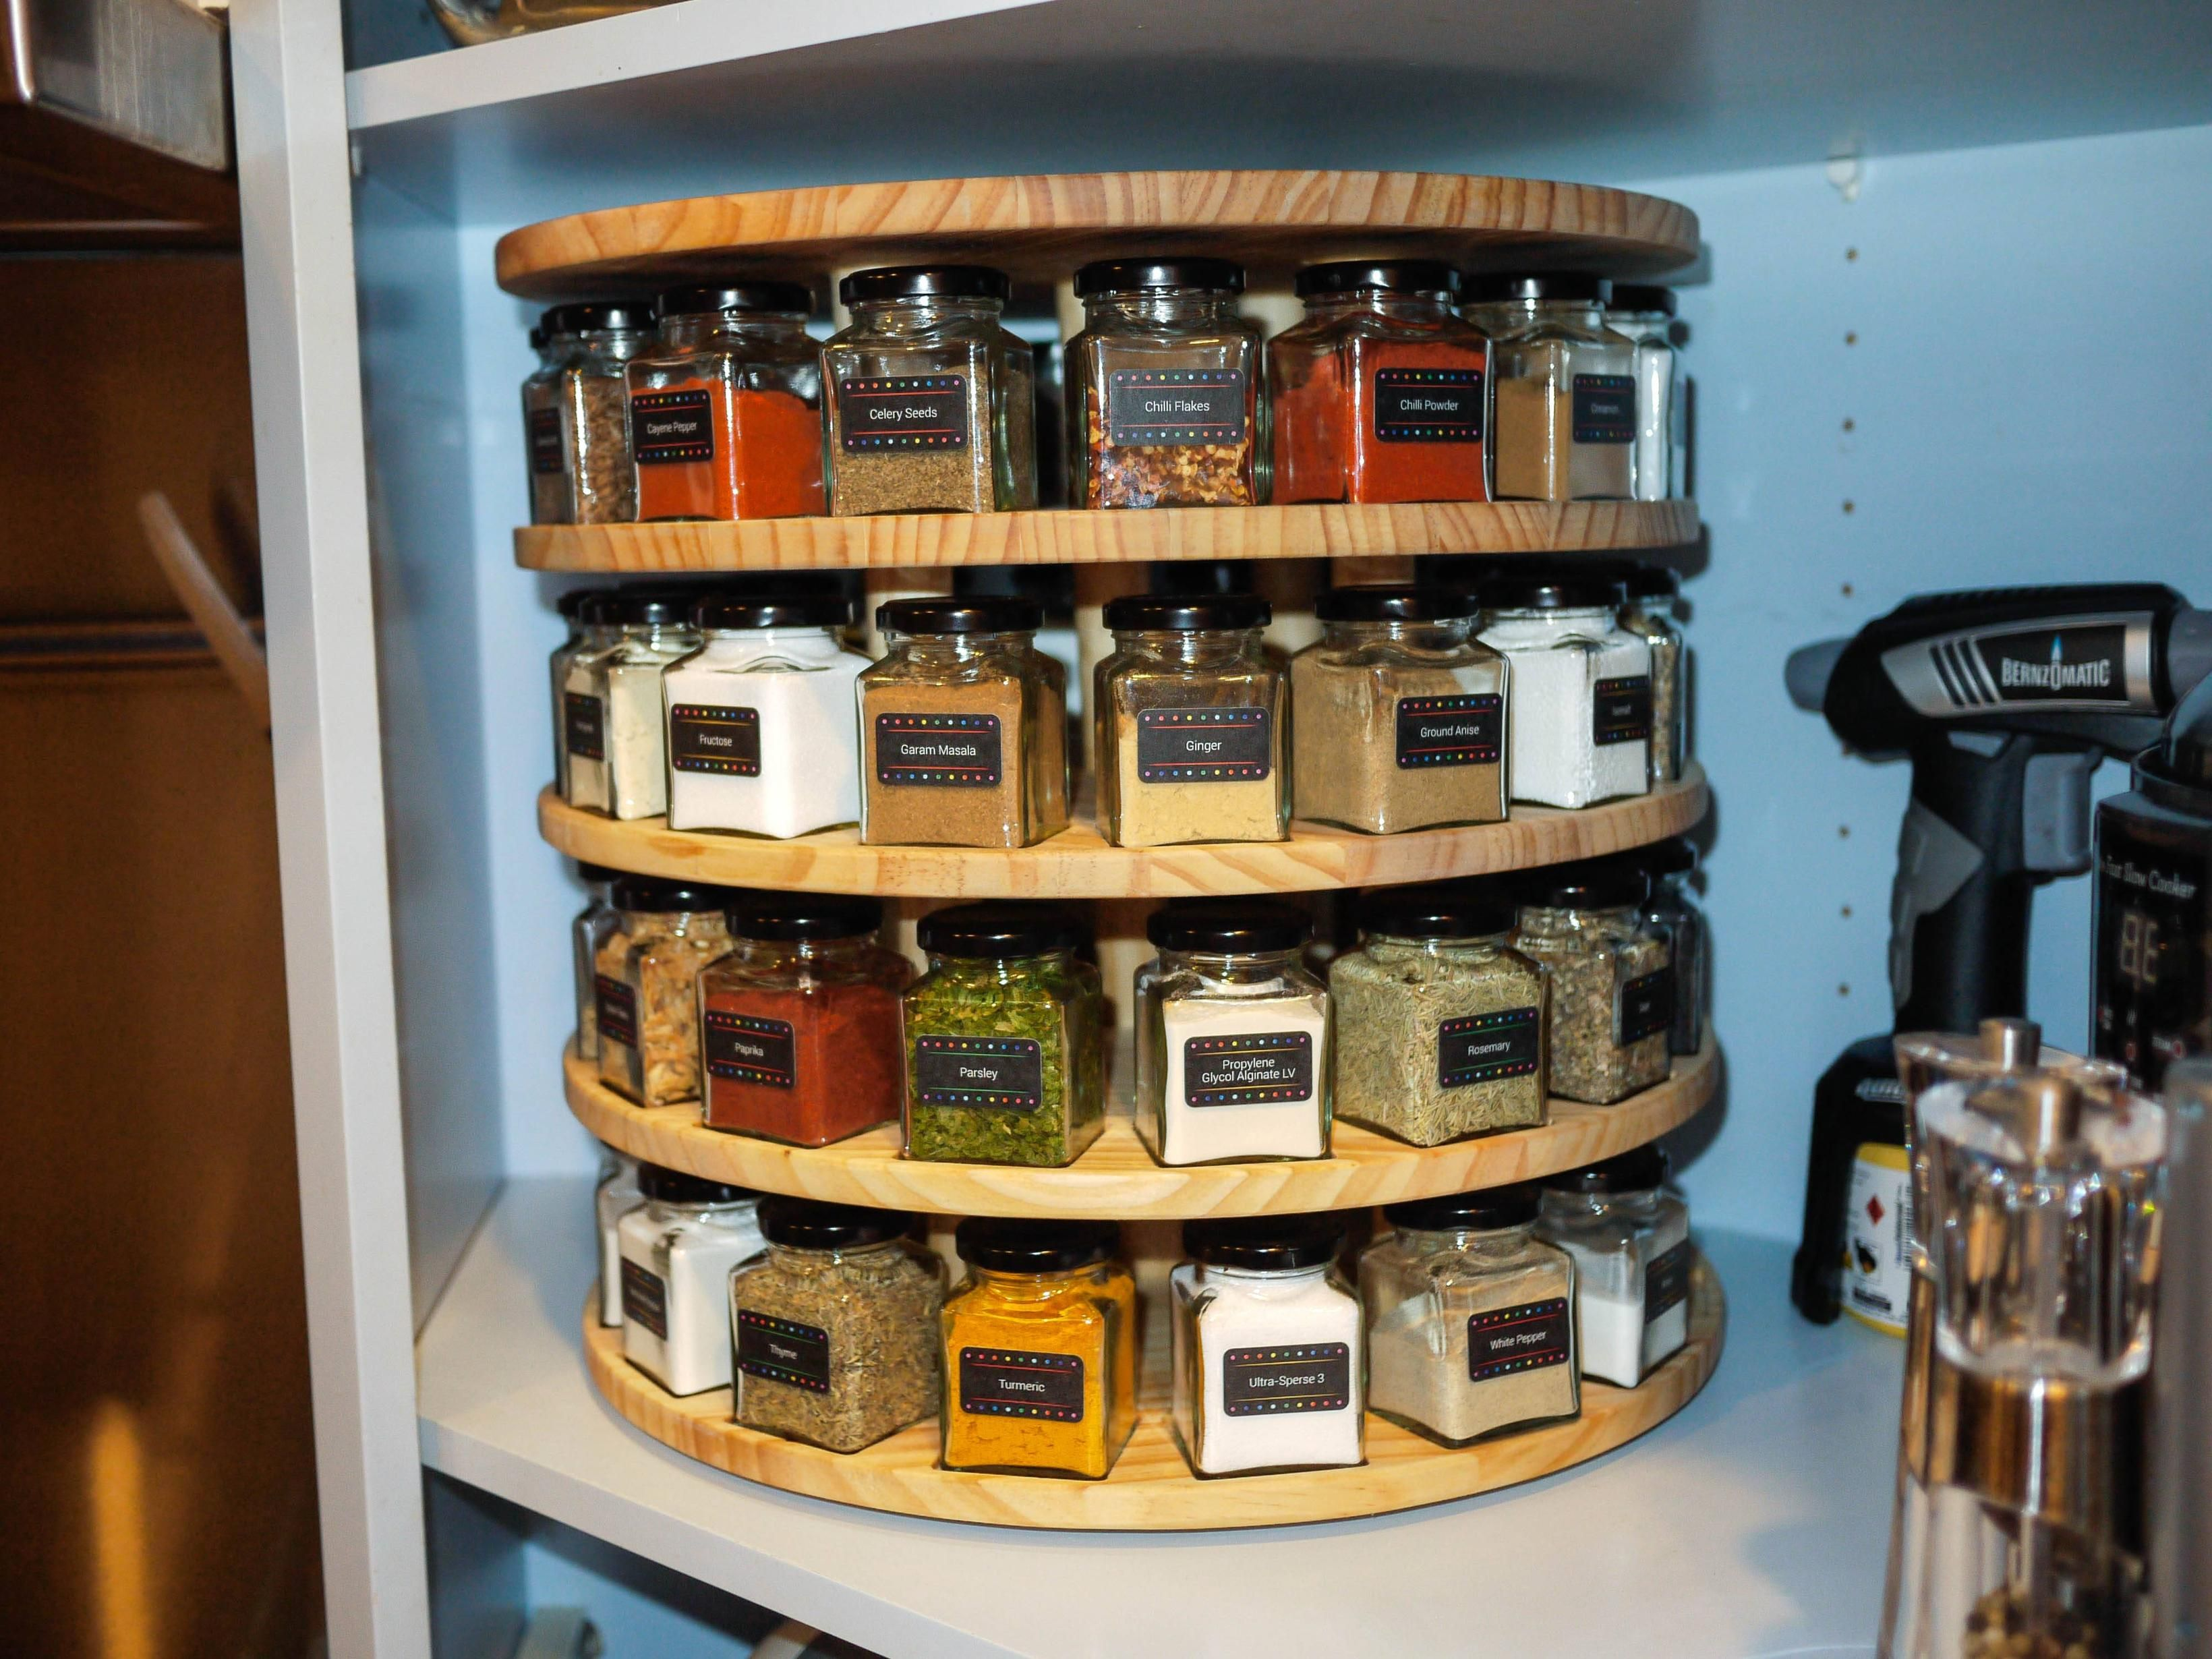 Finally, a spice rack for people who actually cook! Sadly it is ...